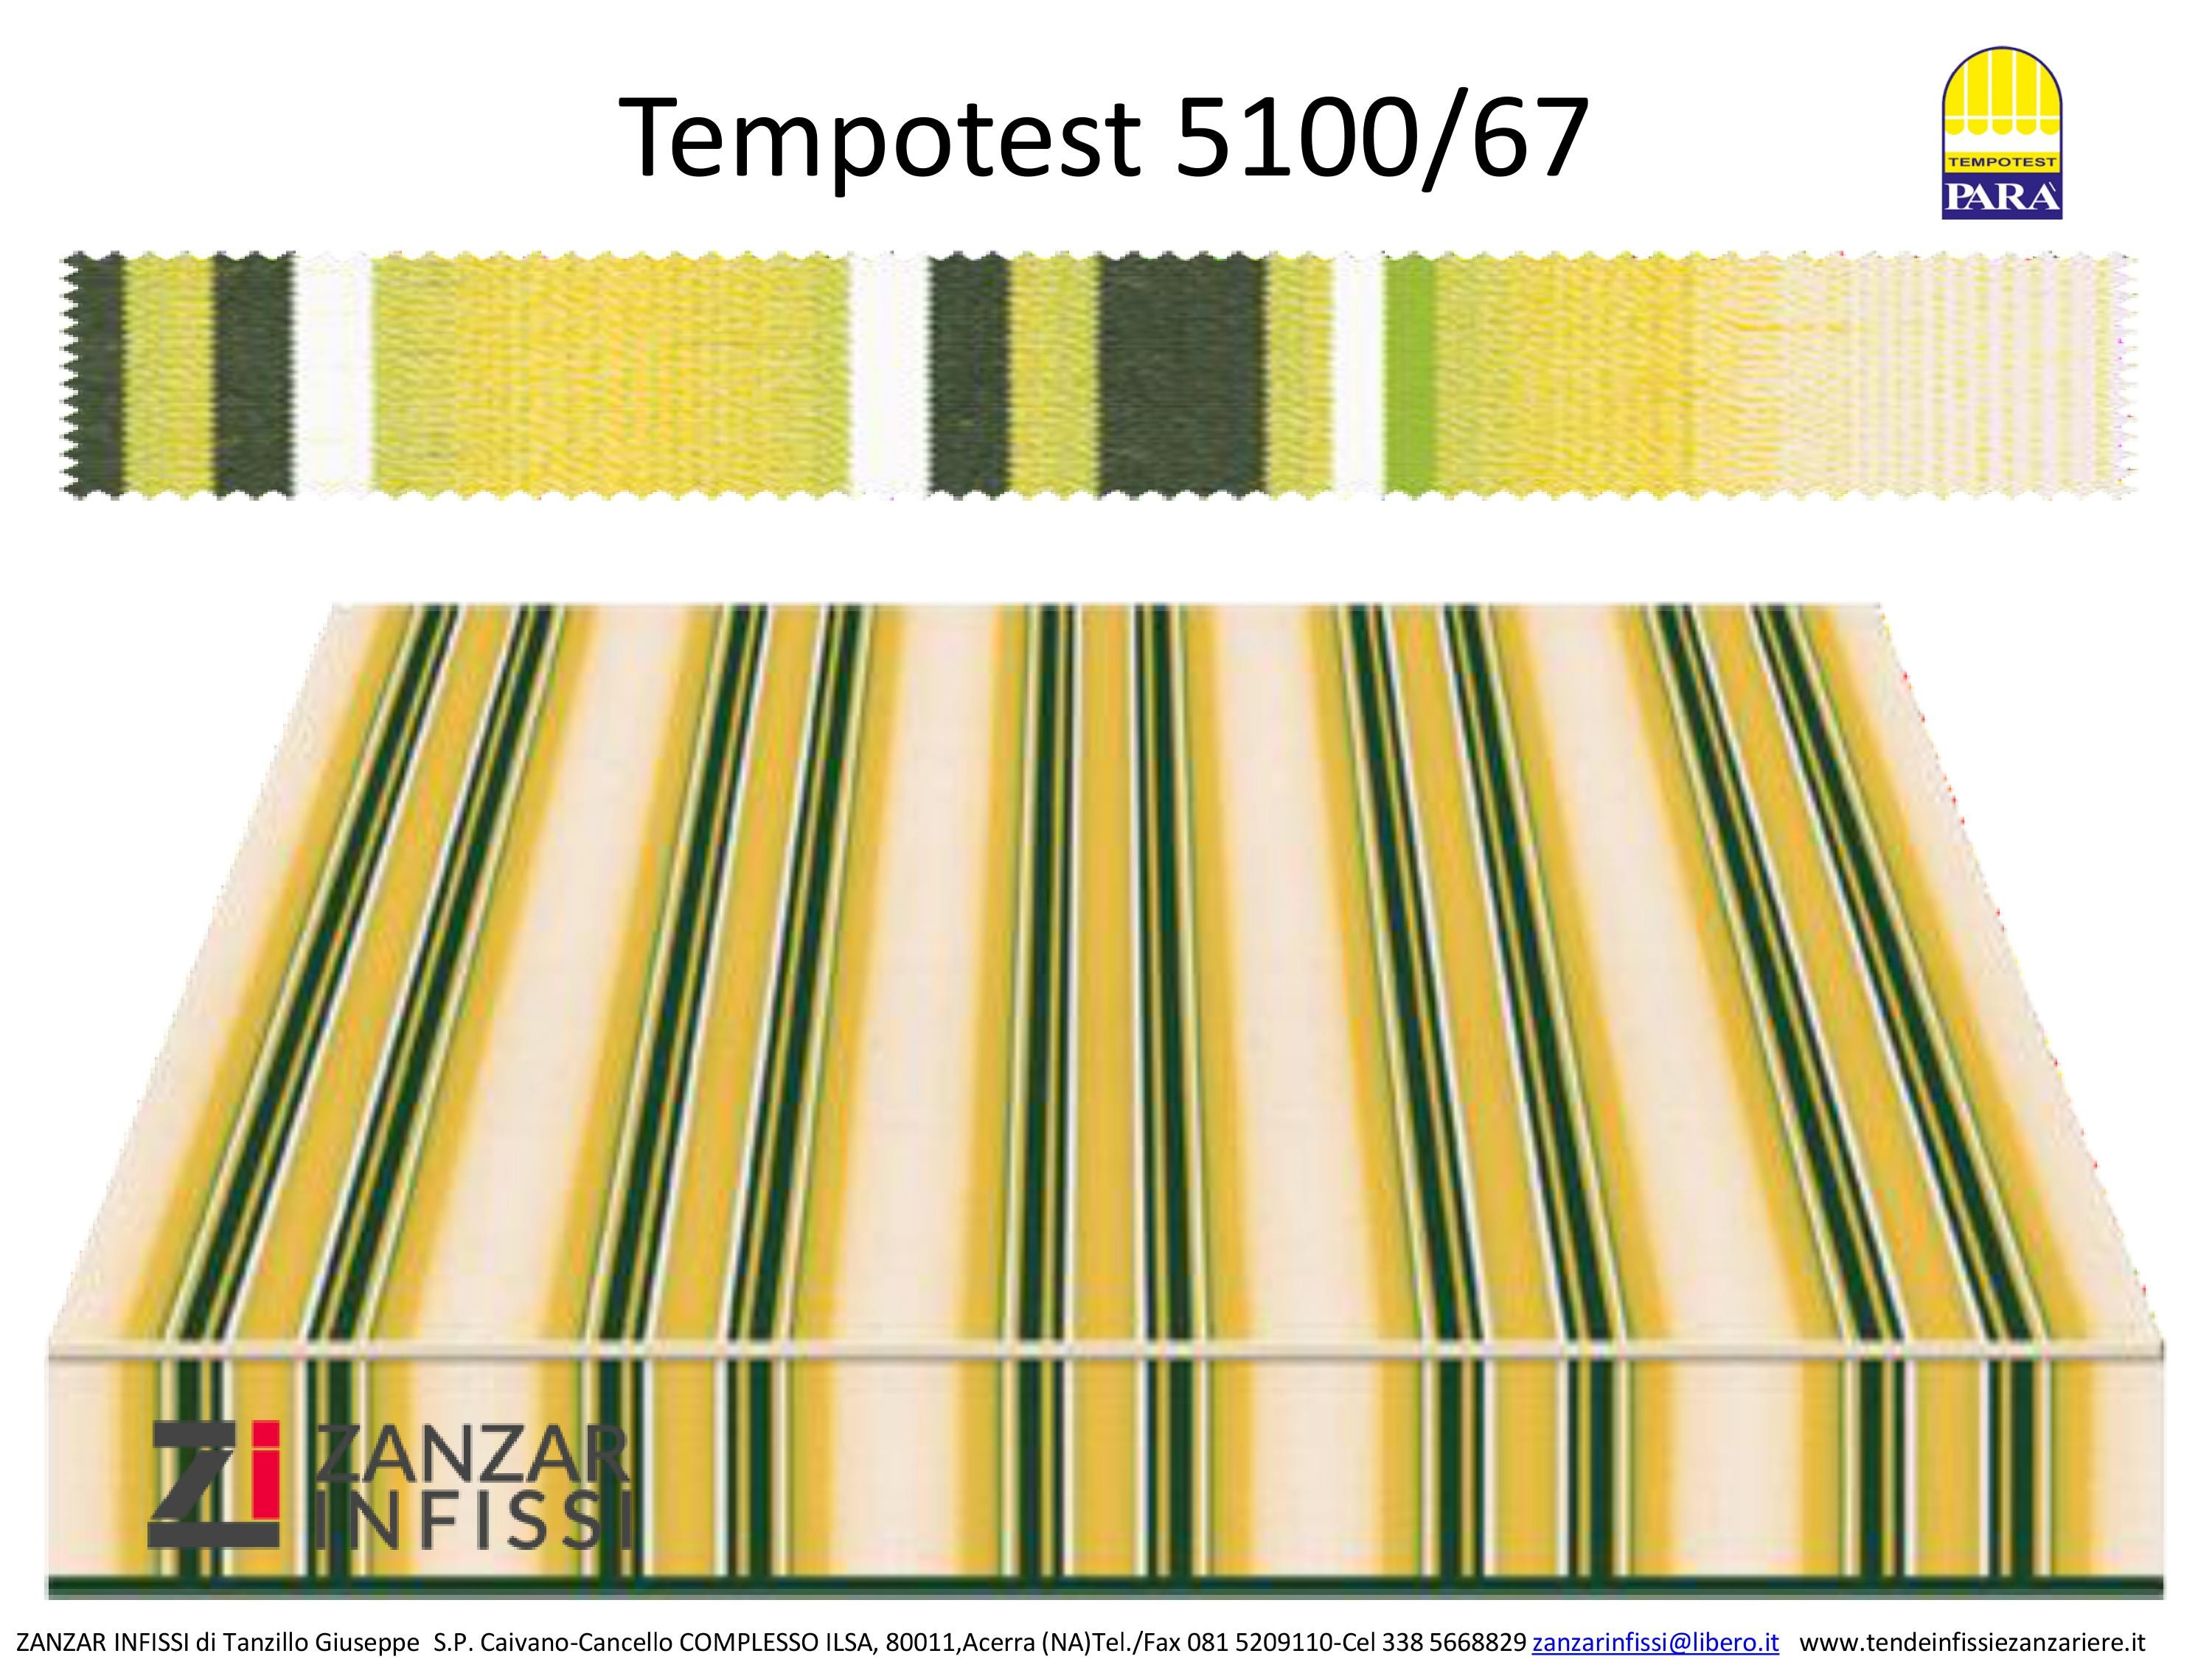 Tempotest 5100/67